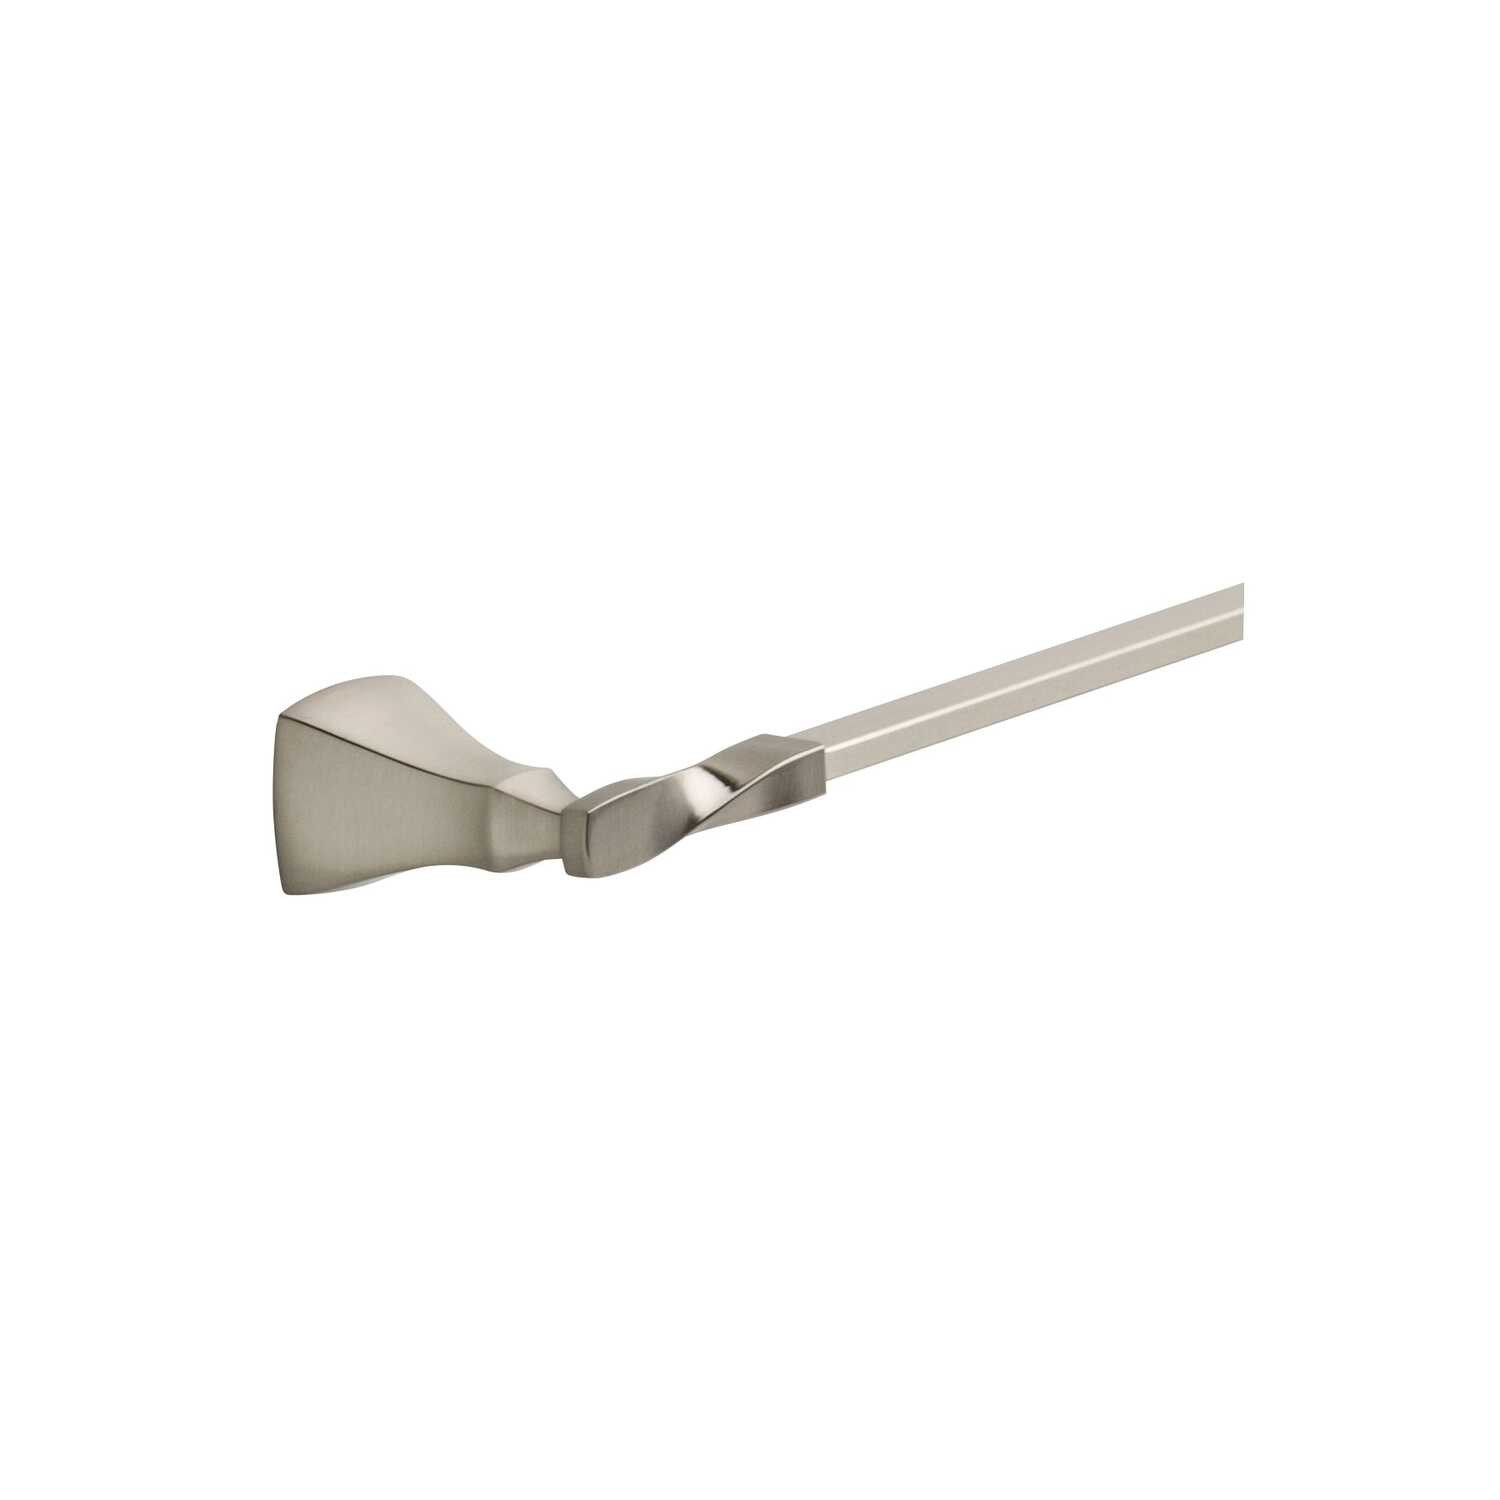 Delta  Sawyer  Satin Nickel  Towel Bar  24 in. L Die Cast Zinc